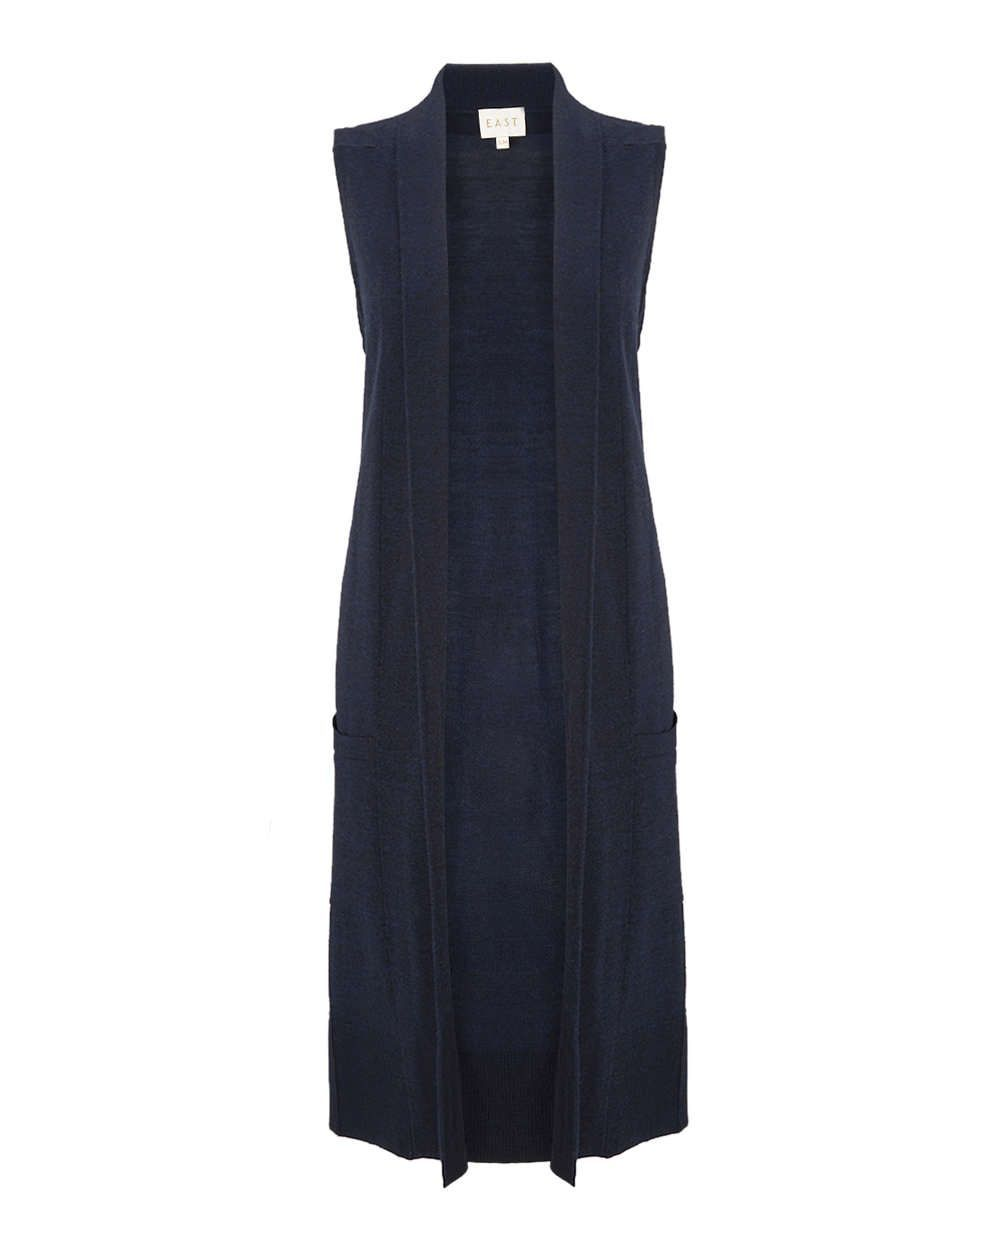 Merino Longline Waistcoat, Ink - pattern: plain; sleeve style: sleeveless; style: gilet; hip detail: front pockets at hip; neckline: collarless open; predominant colour: navy; occasions: casual, creative work; fibres: wool - mix; fit: loose; length: mid thigh; sleeve length: sleeveless; texture group: knits/crochet; pattern type: knitted - fine stitch; season: a/w 2015